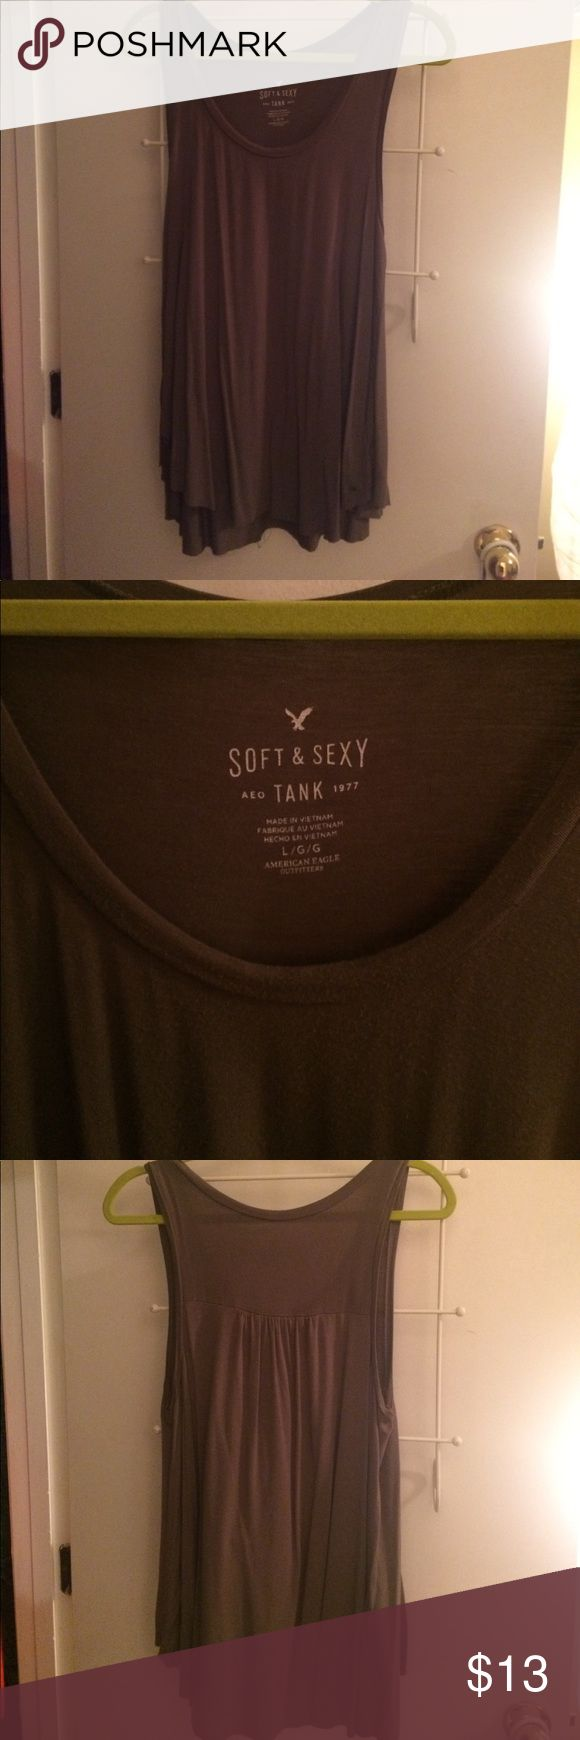 American Eagle Outfitters Soft & Sexy Tank Top American Eagle Outfitters Soft & Sexy Olive Green Tank Top. Size: Large American Eagle Outfitters Tops Tank Tops